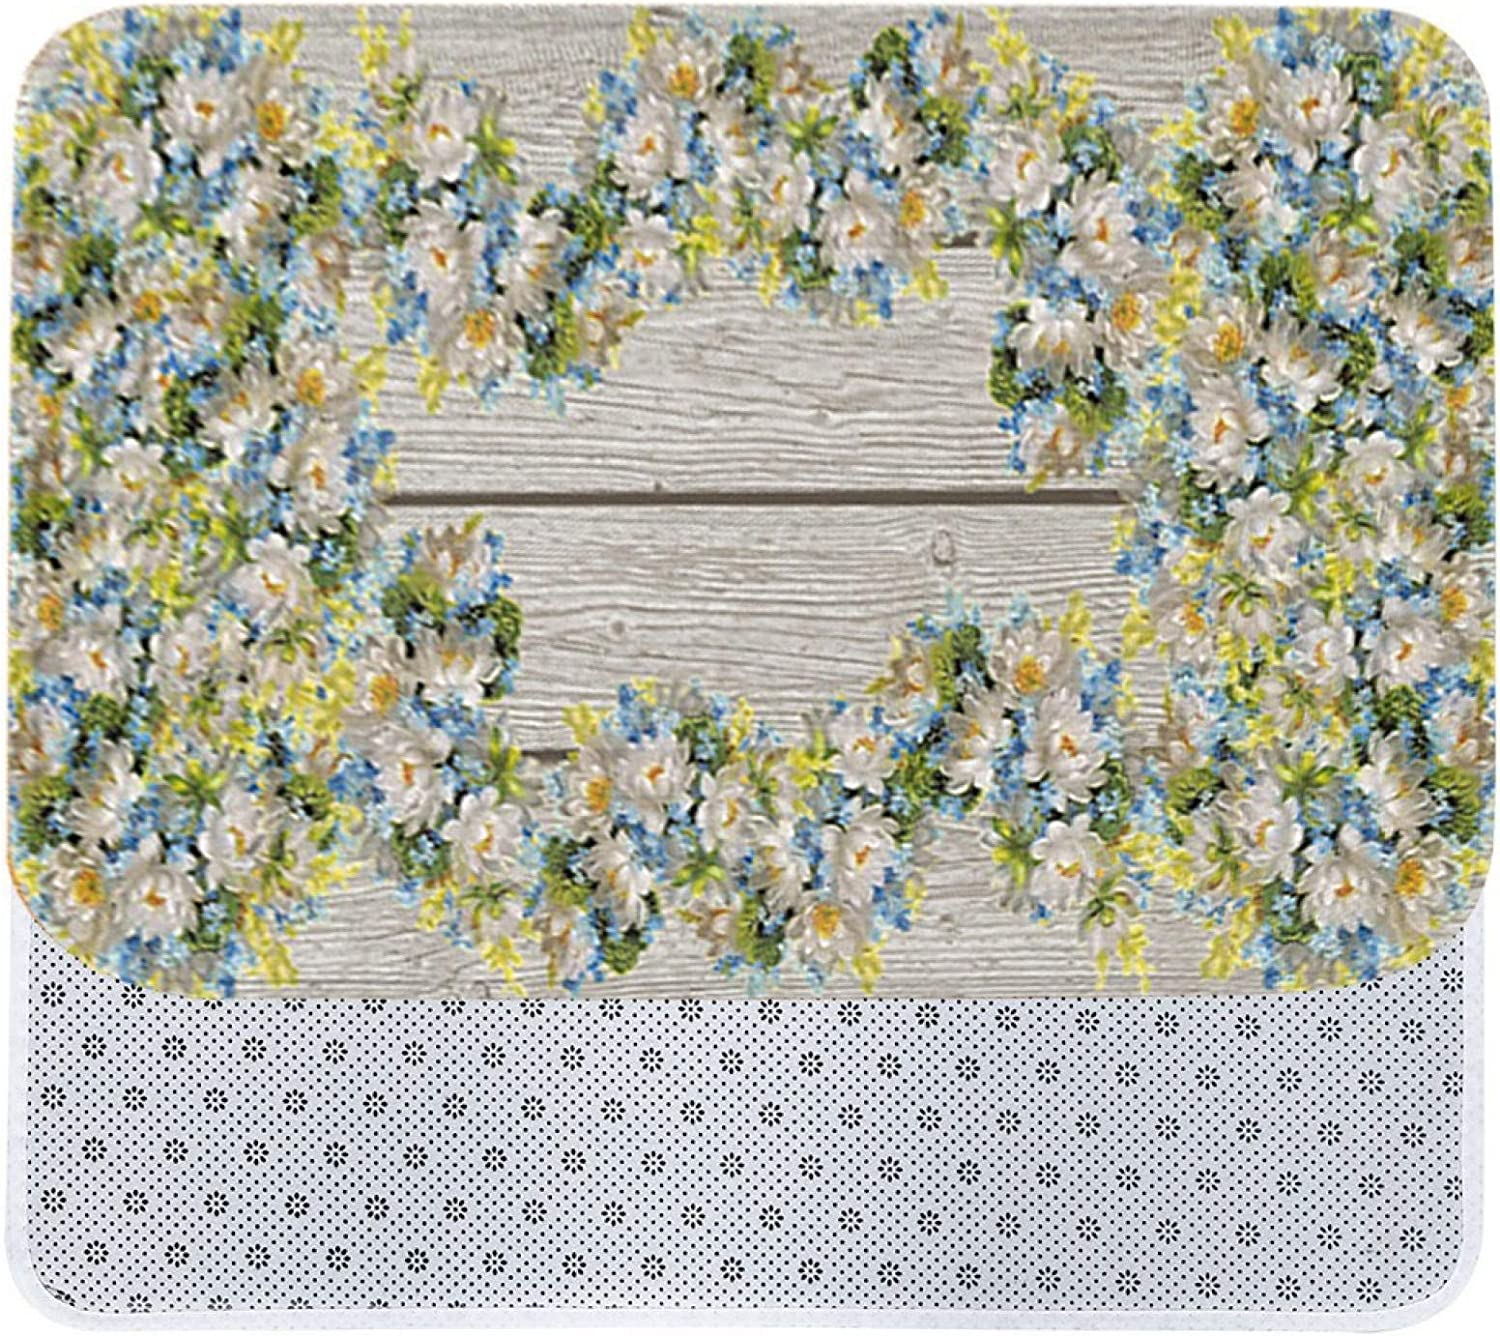 Omabeta Non-Slip Floor Memphis Mall Limited time trial price Carpet Doormat Water Absorption Wearable